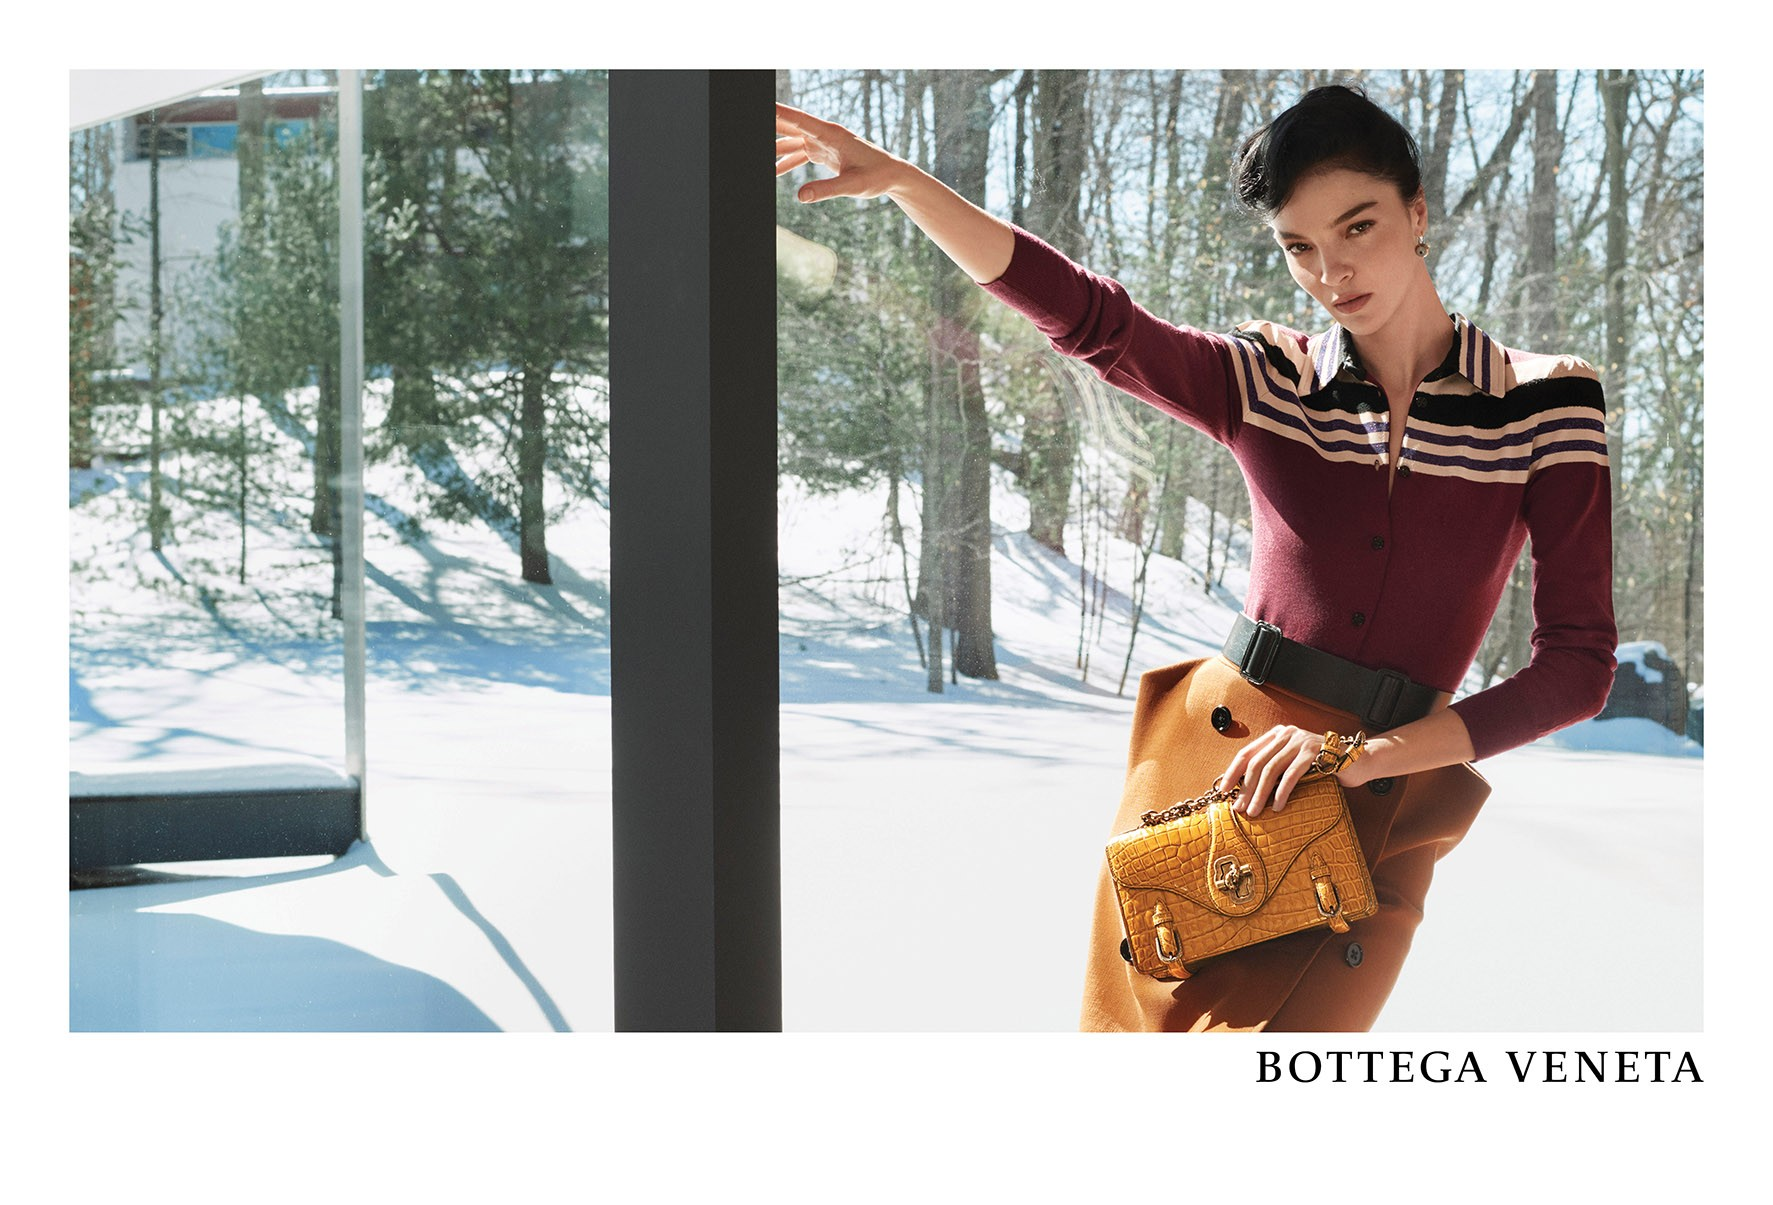 Bottega Veneta - The Art of Collaboration (Foto: Divulgação)